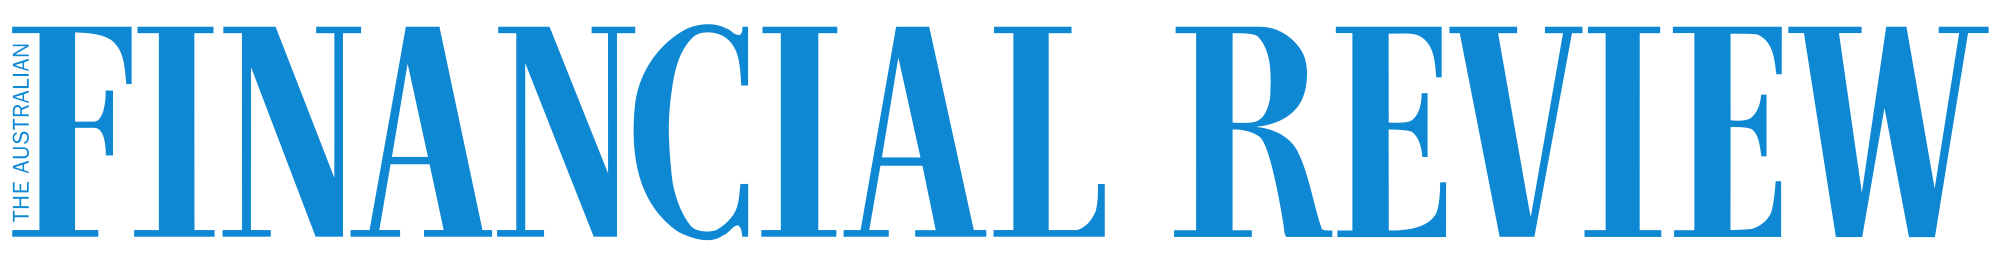 the-australian-financial-review-masthead.png